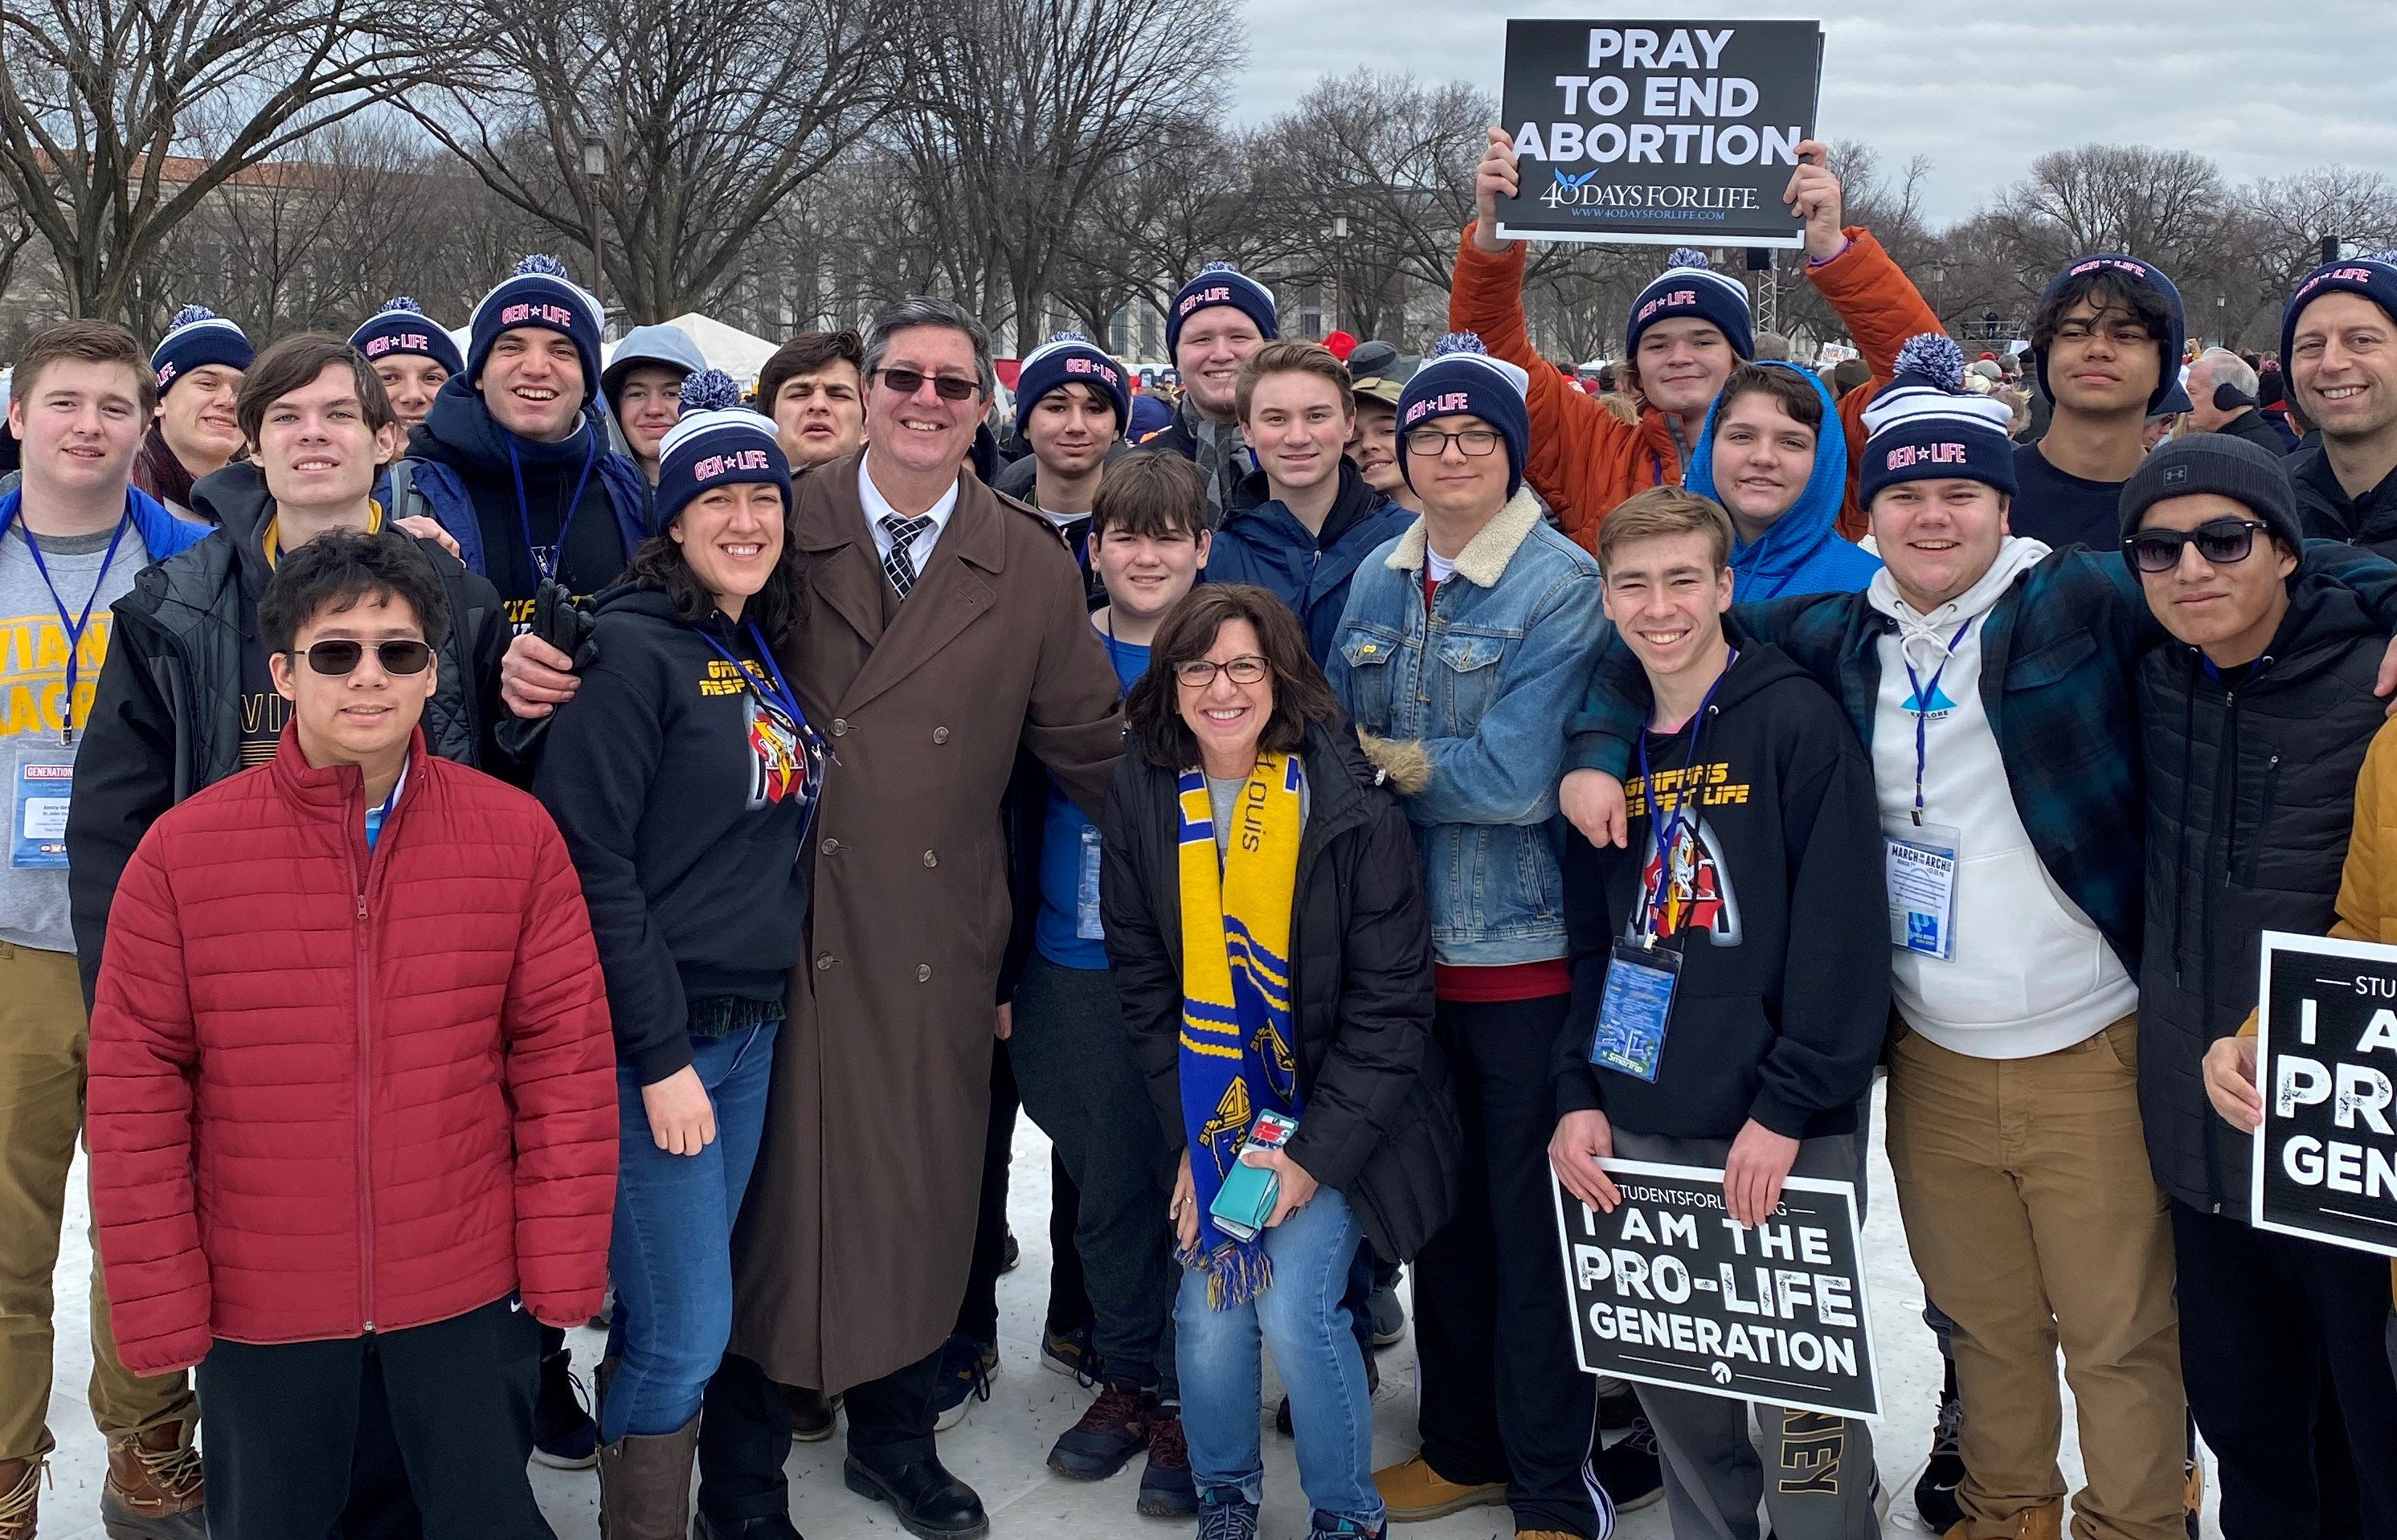 Catholic Healthcare International At March For Life 2020